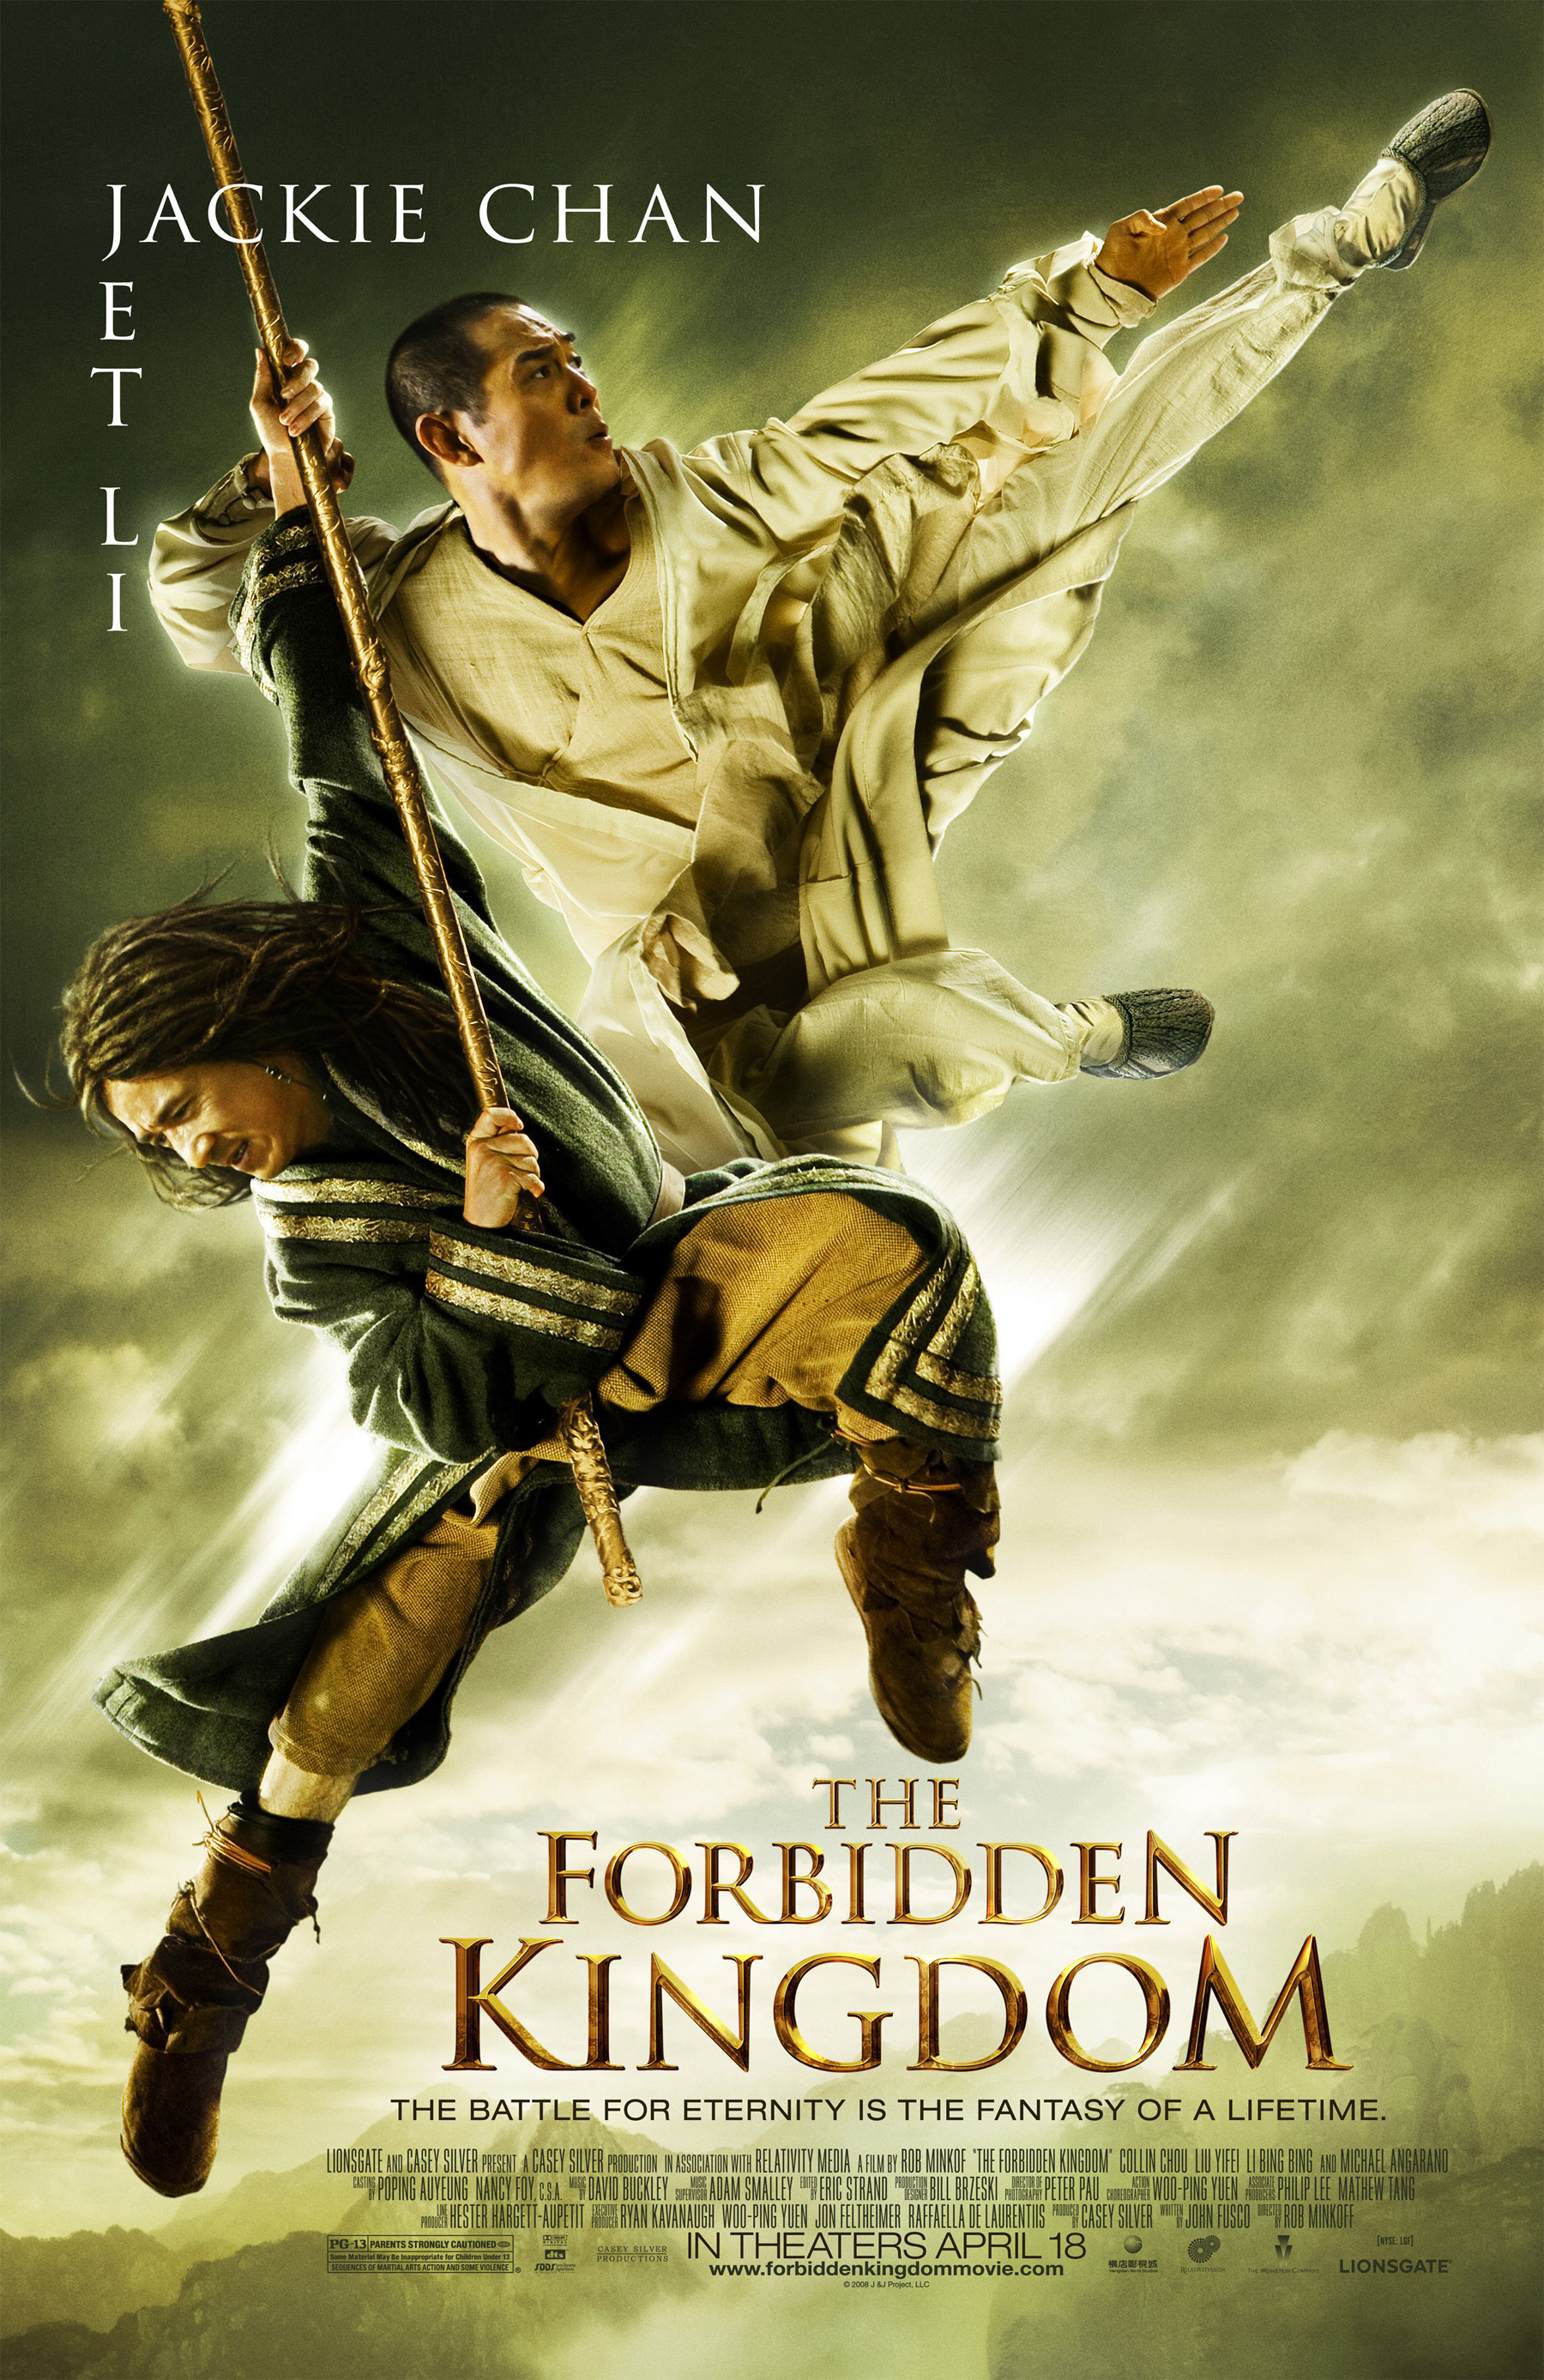 AICN Exclusive Poster Debut: THE FORBIDDEN KINGDOM!!